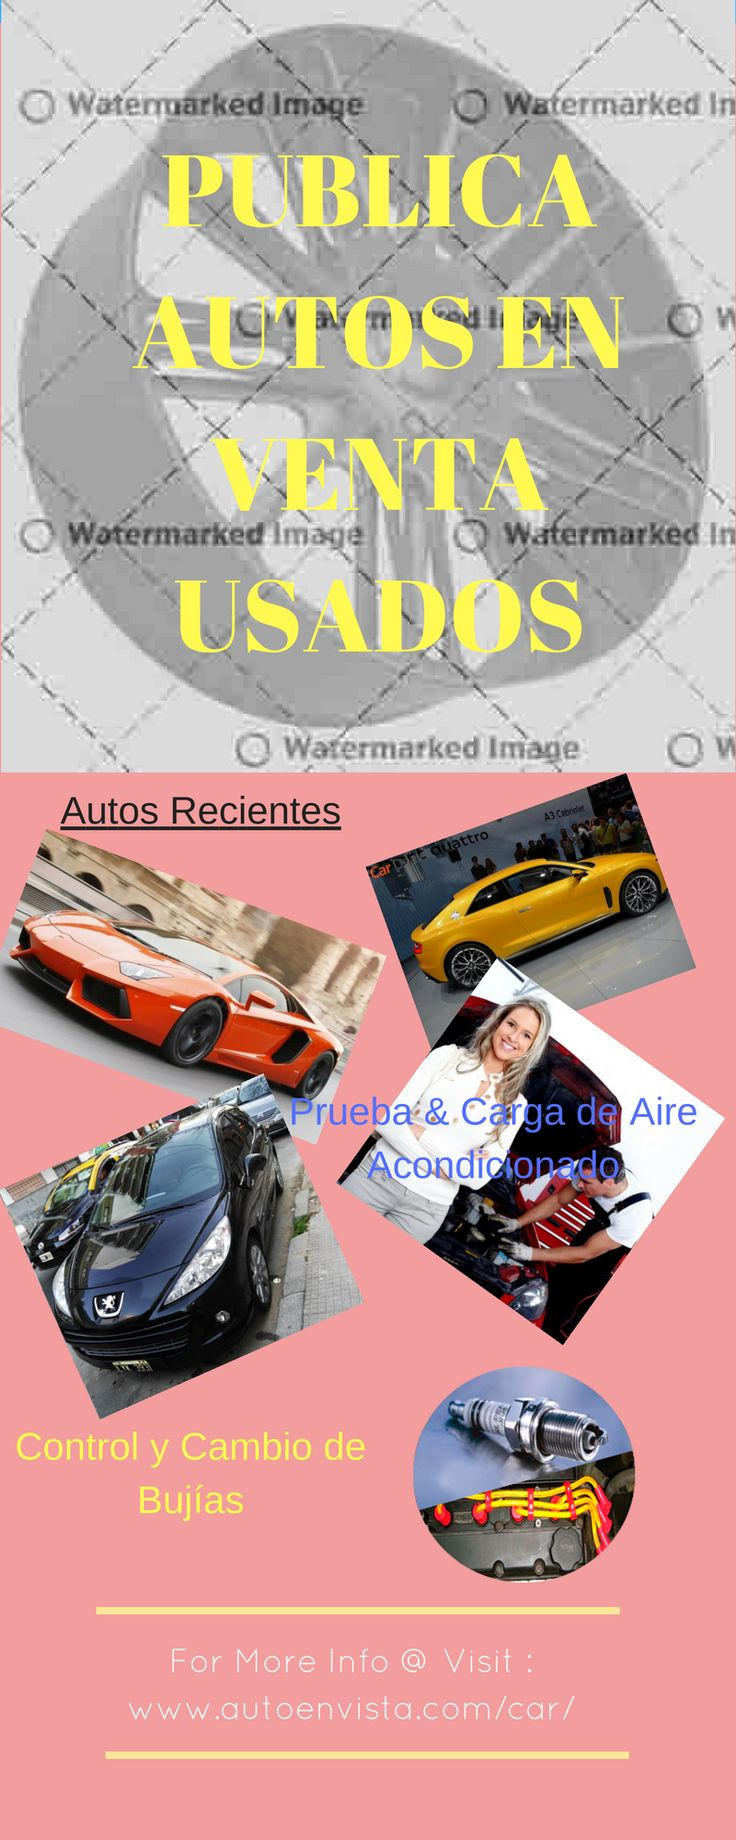 Autoenvista provides services for buying and selling cars and used vehicles for sale in Argentina. visit: http://www.autoenvista.com/car/lamborghini-aventador-2014/